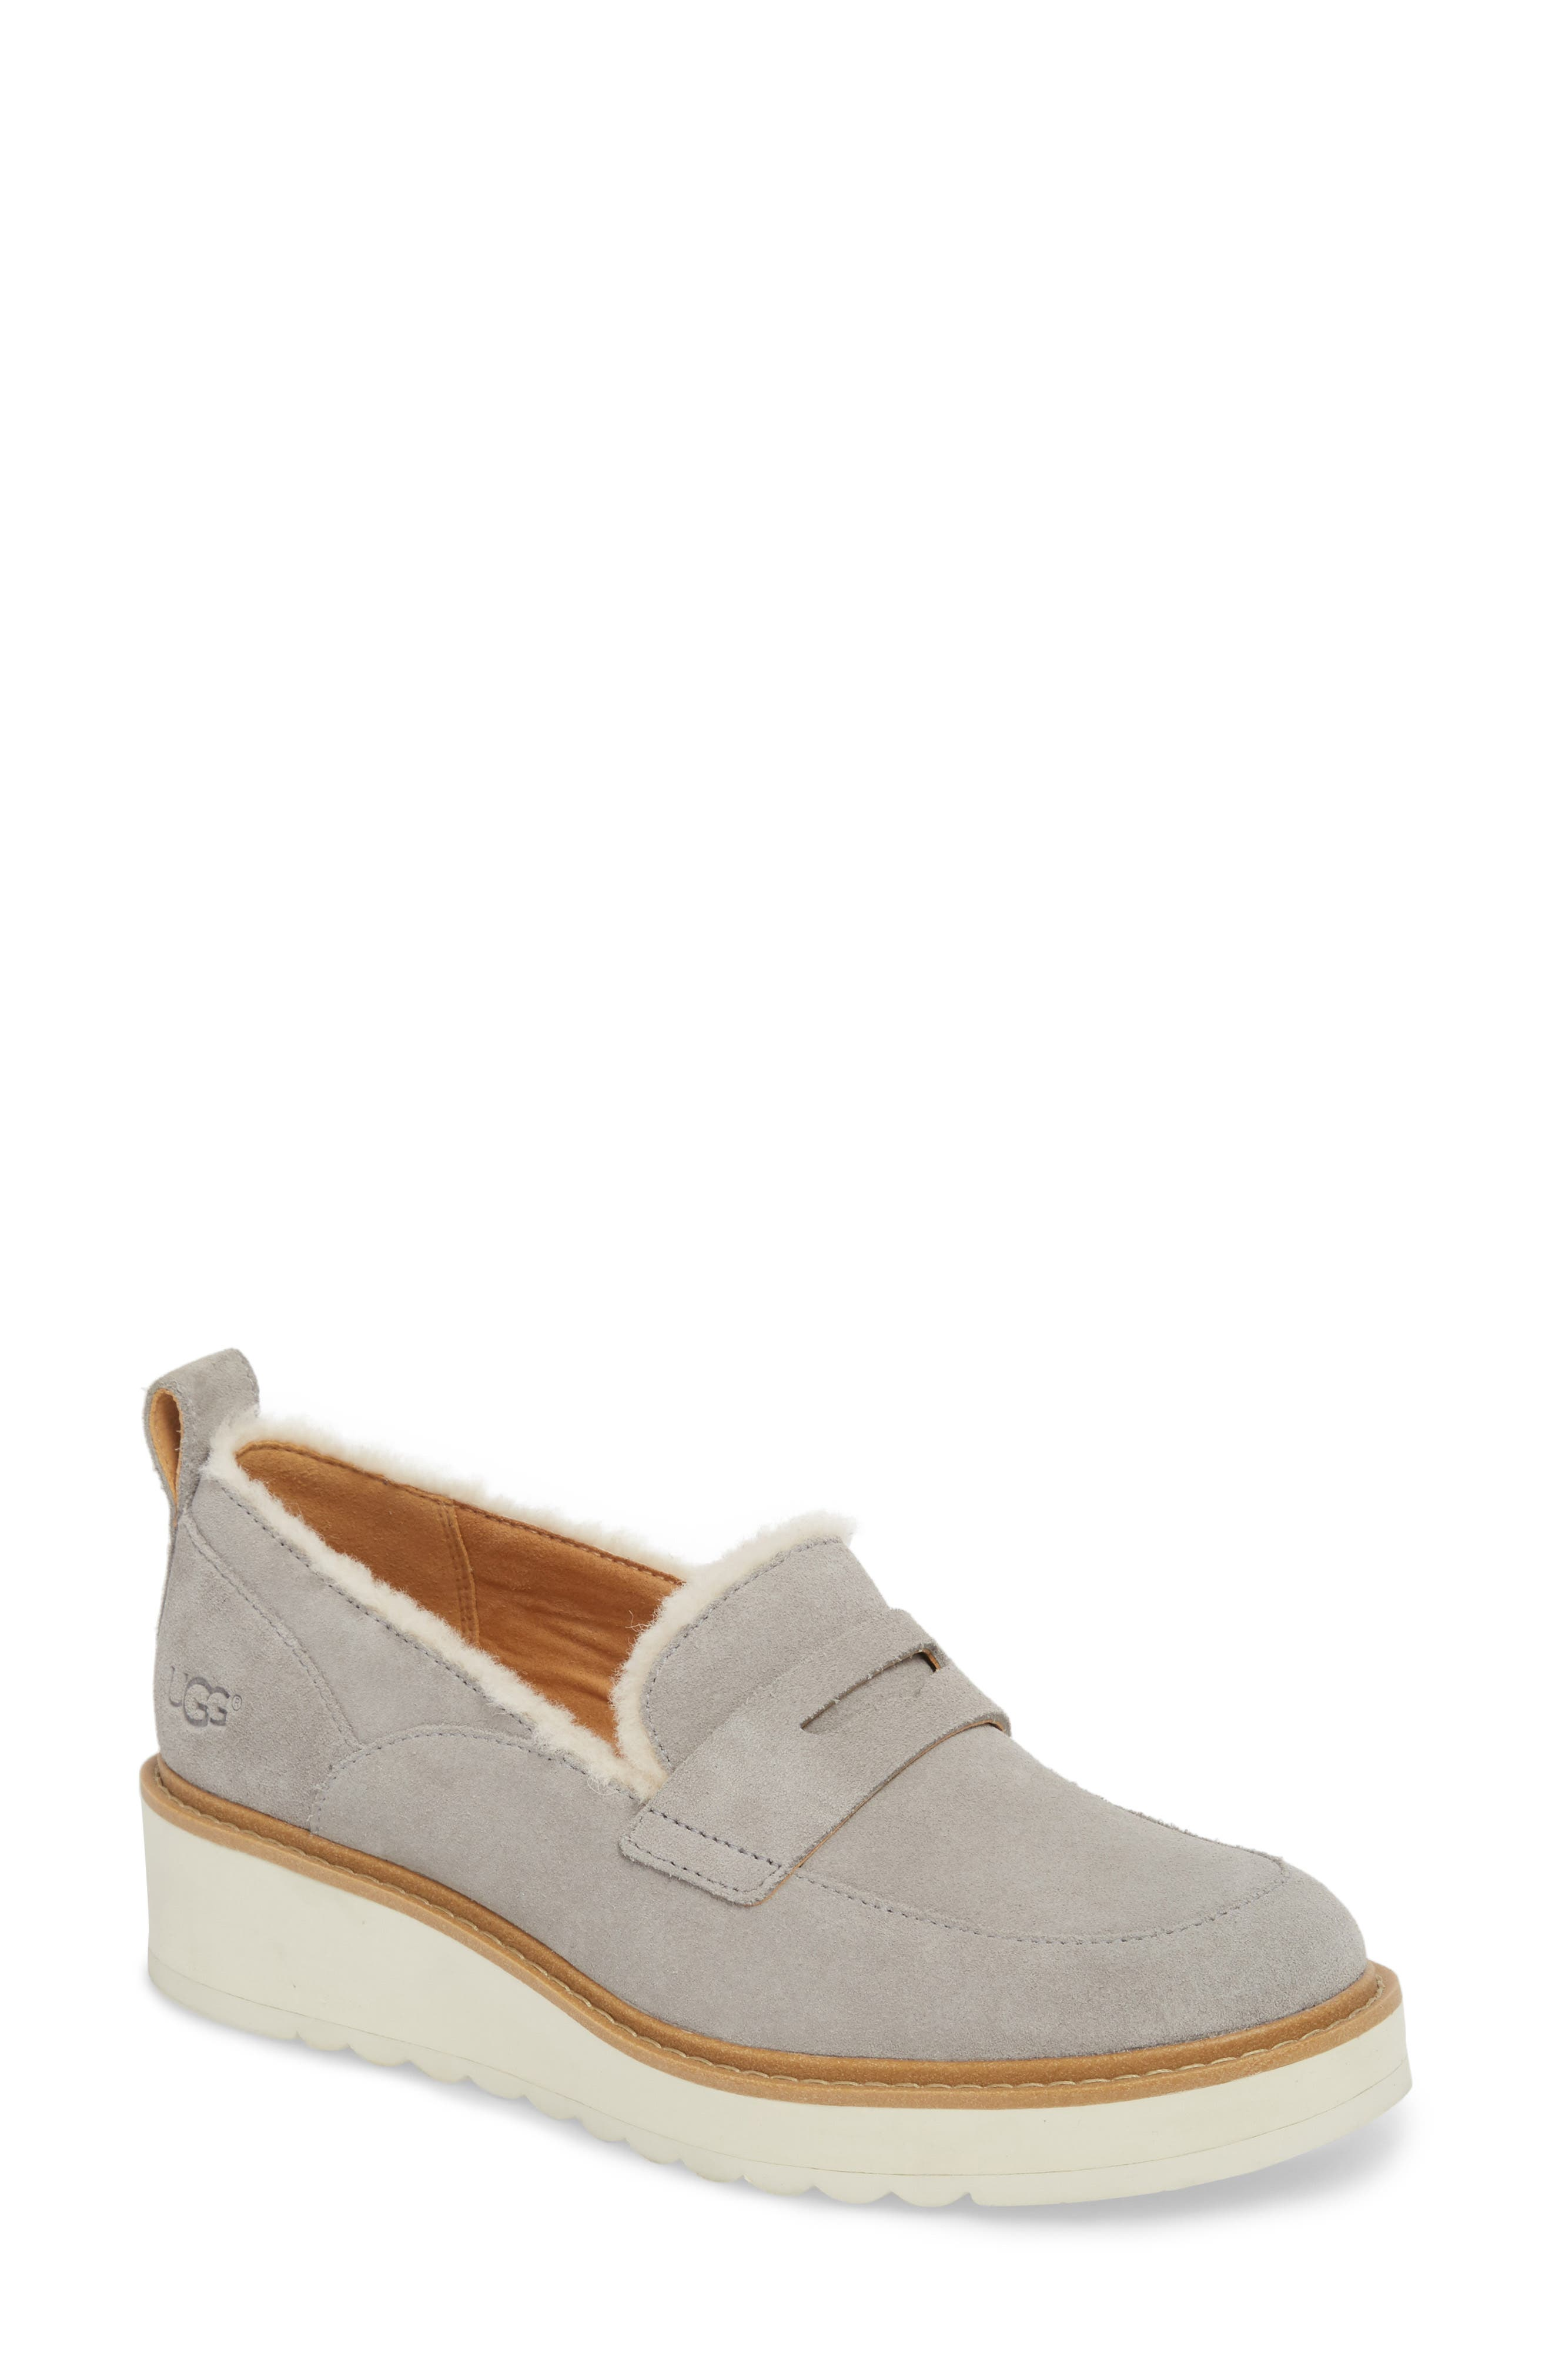 Atwater Spill Seam Wedge Loafer,                         Main,                         color, SEAL LEATHER